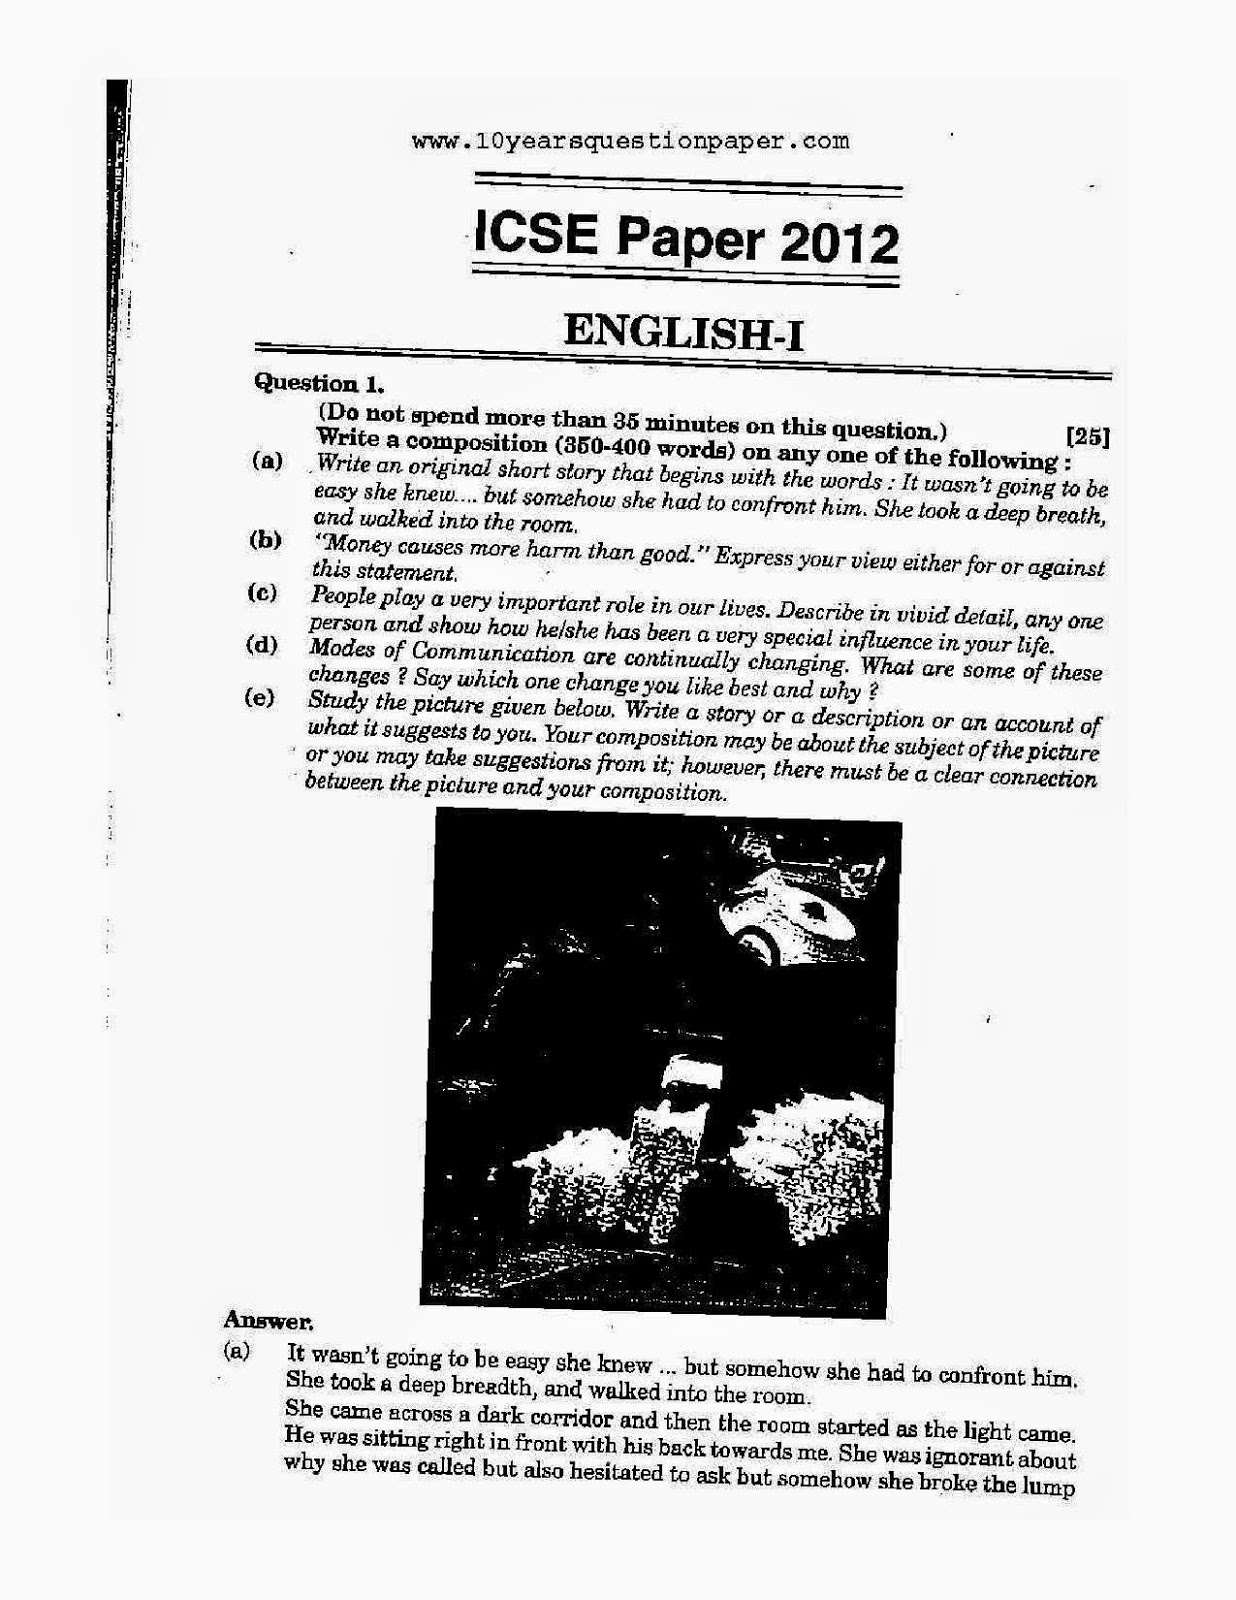 Icse class 10th English Language solved question paper 2012